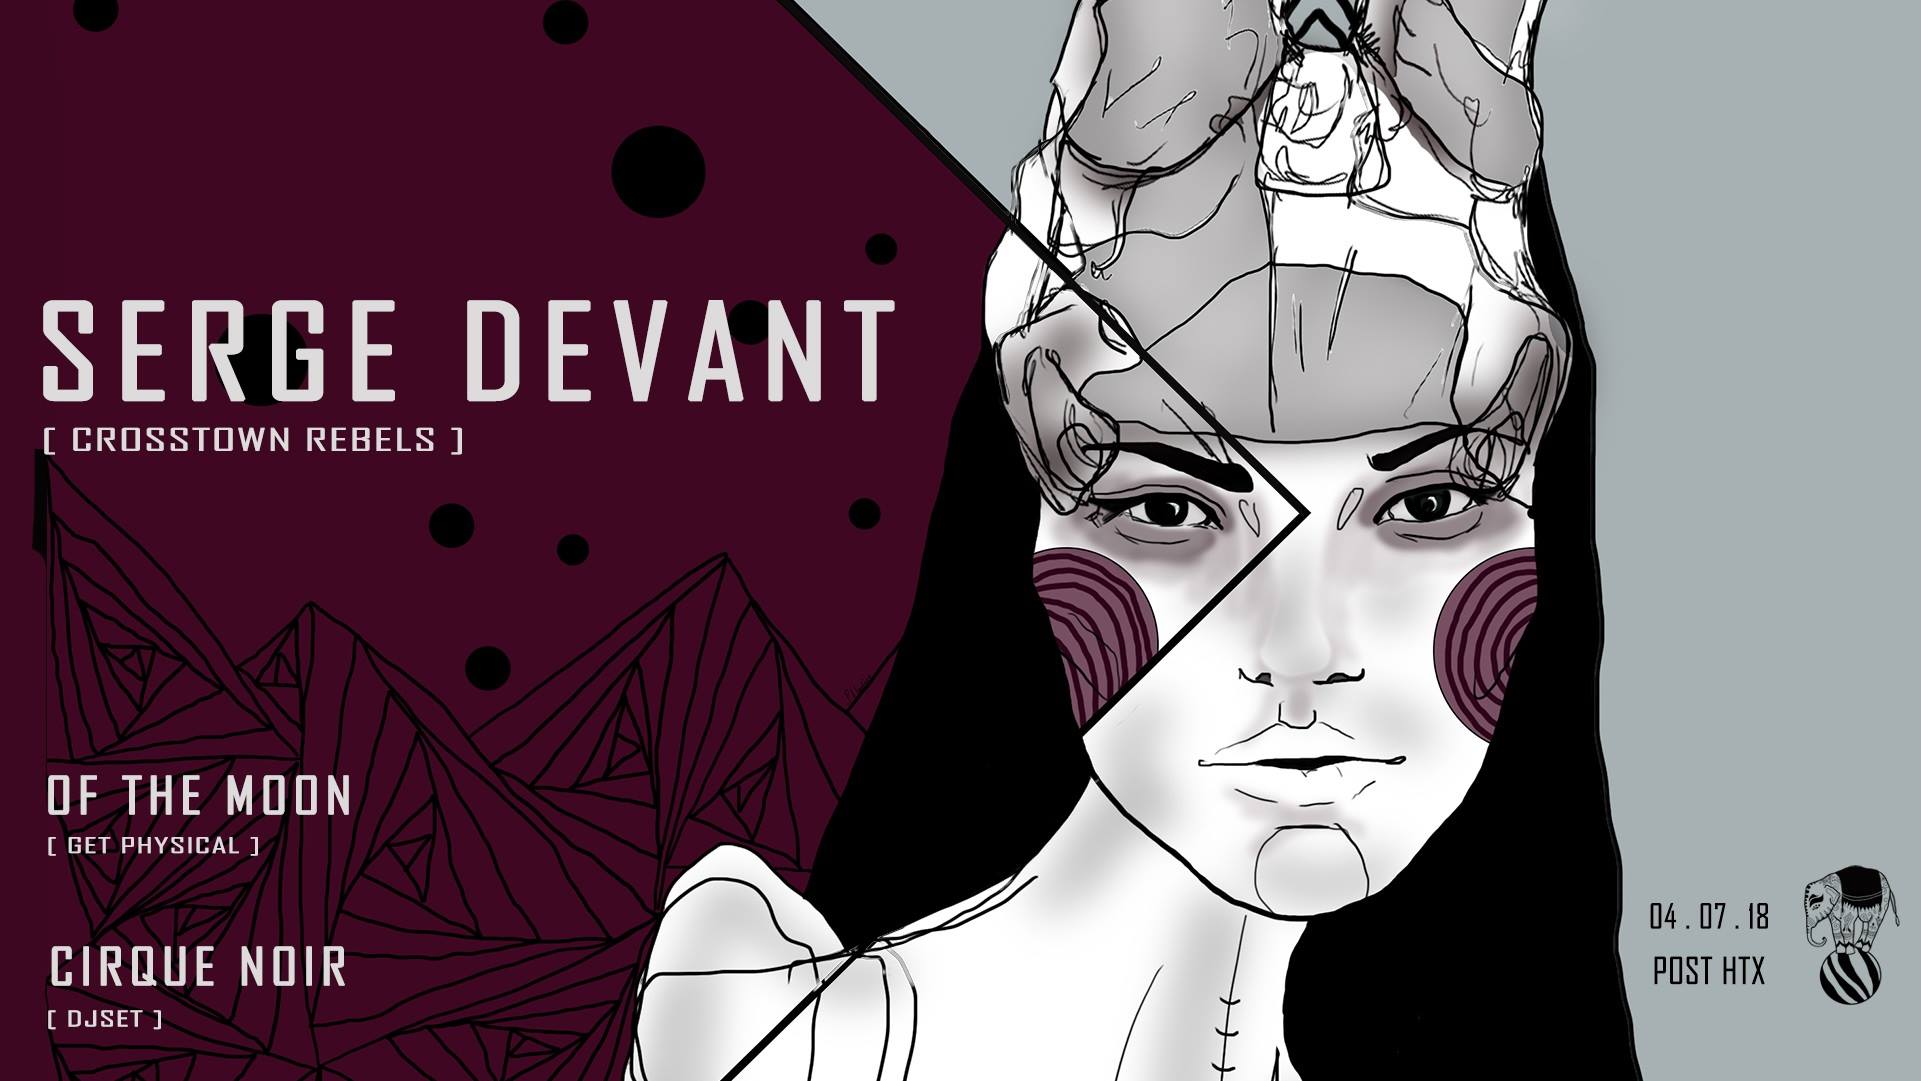 Serge Devant at Cirque Noir, 9pm-6am